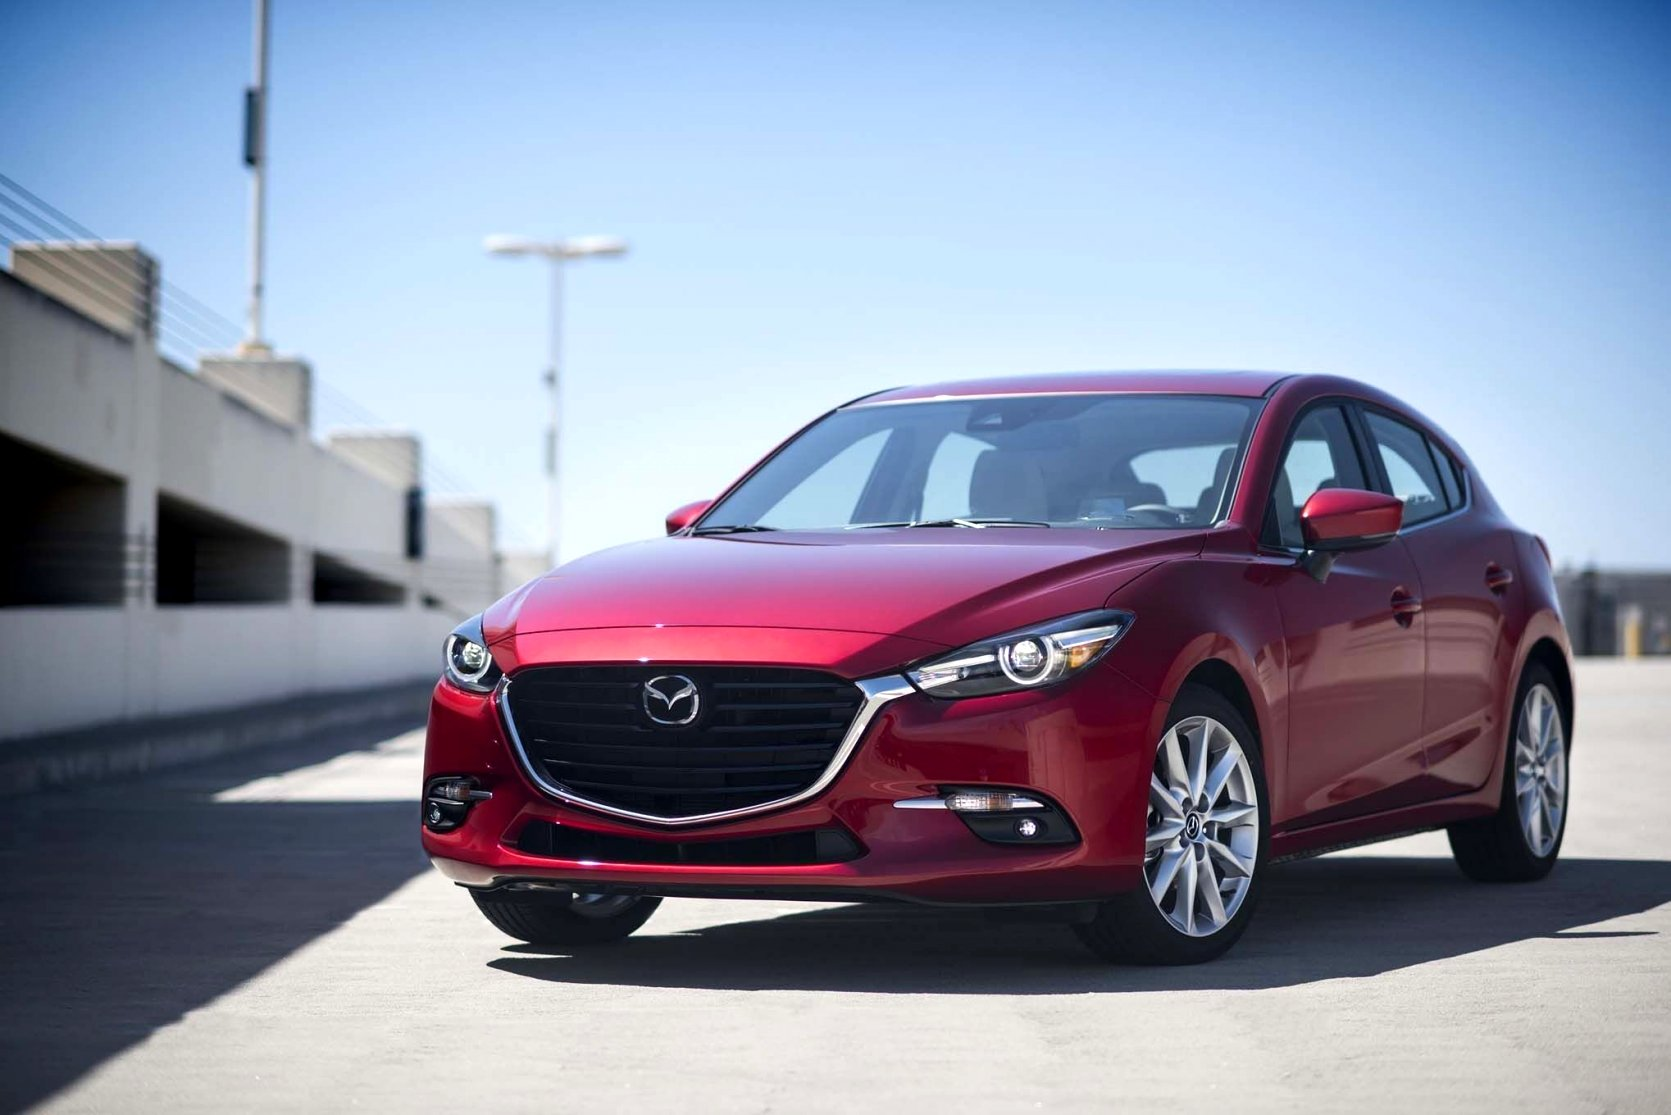 mazda 3 2020 price in qatar Prices